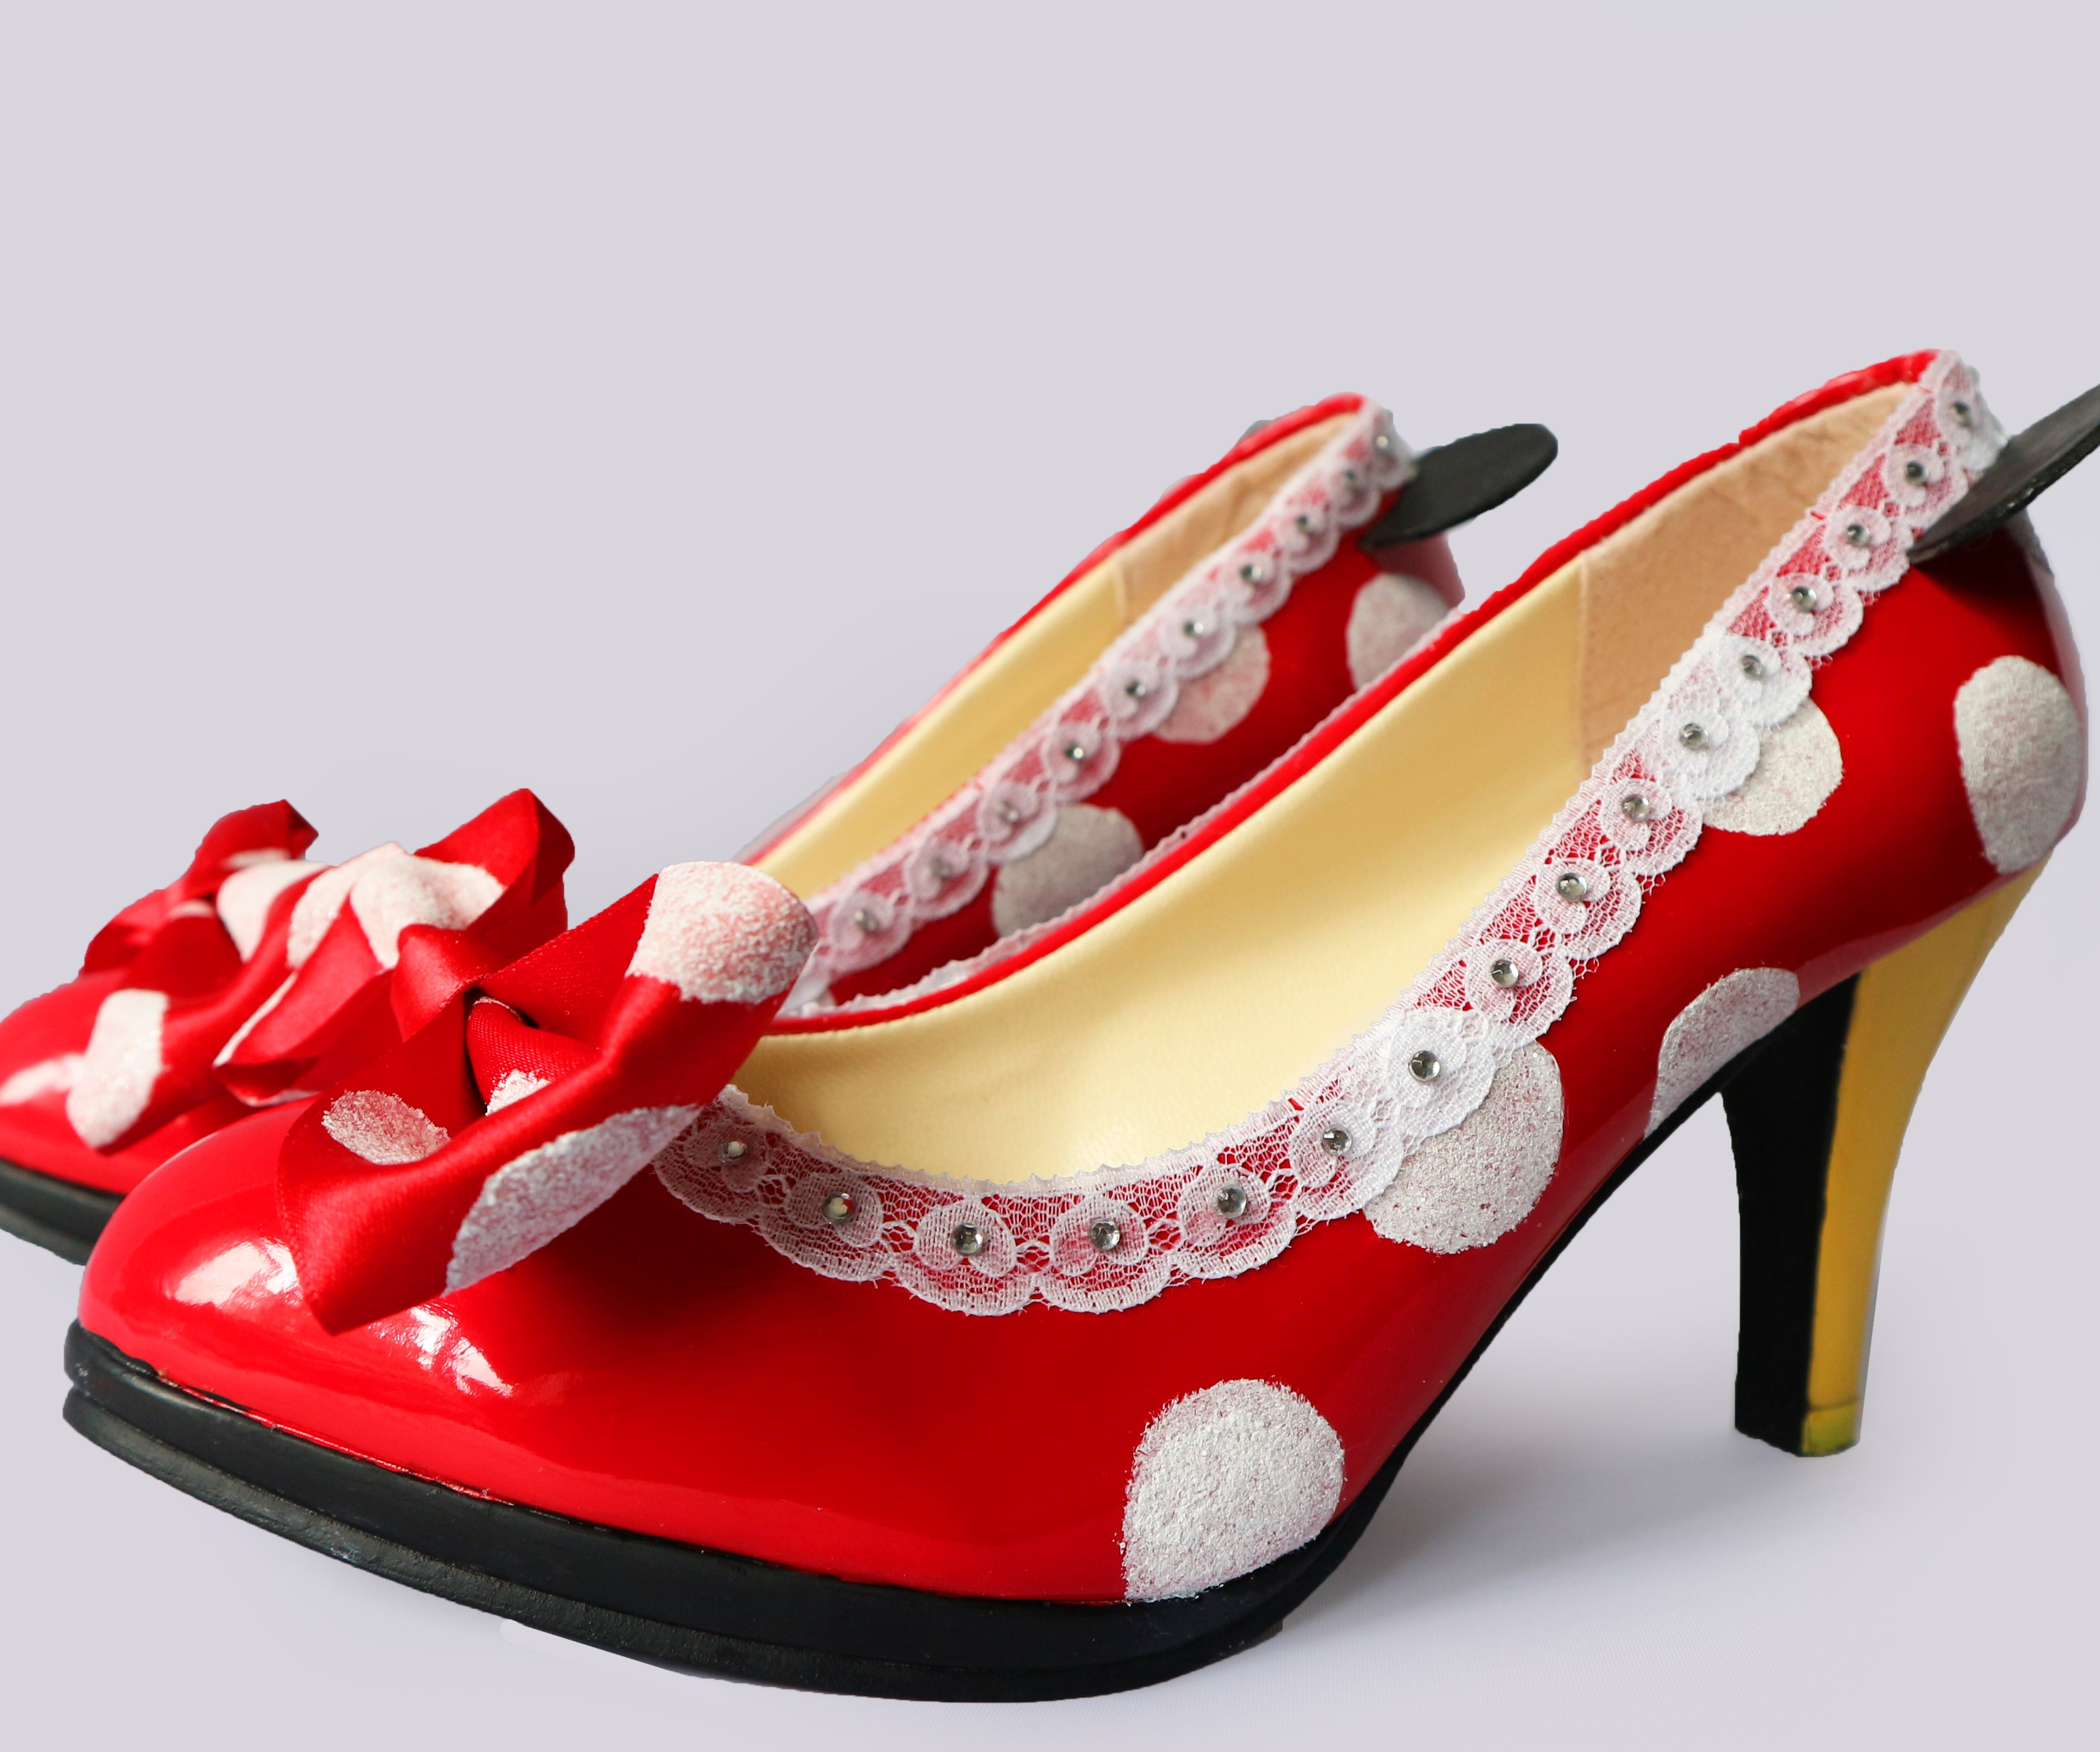 Minnie Mouse High Heel Shoes 6 Steps With Pictures Instructables